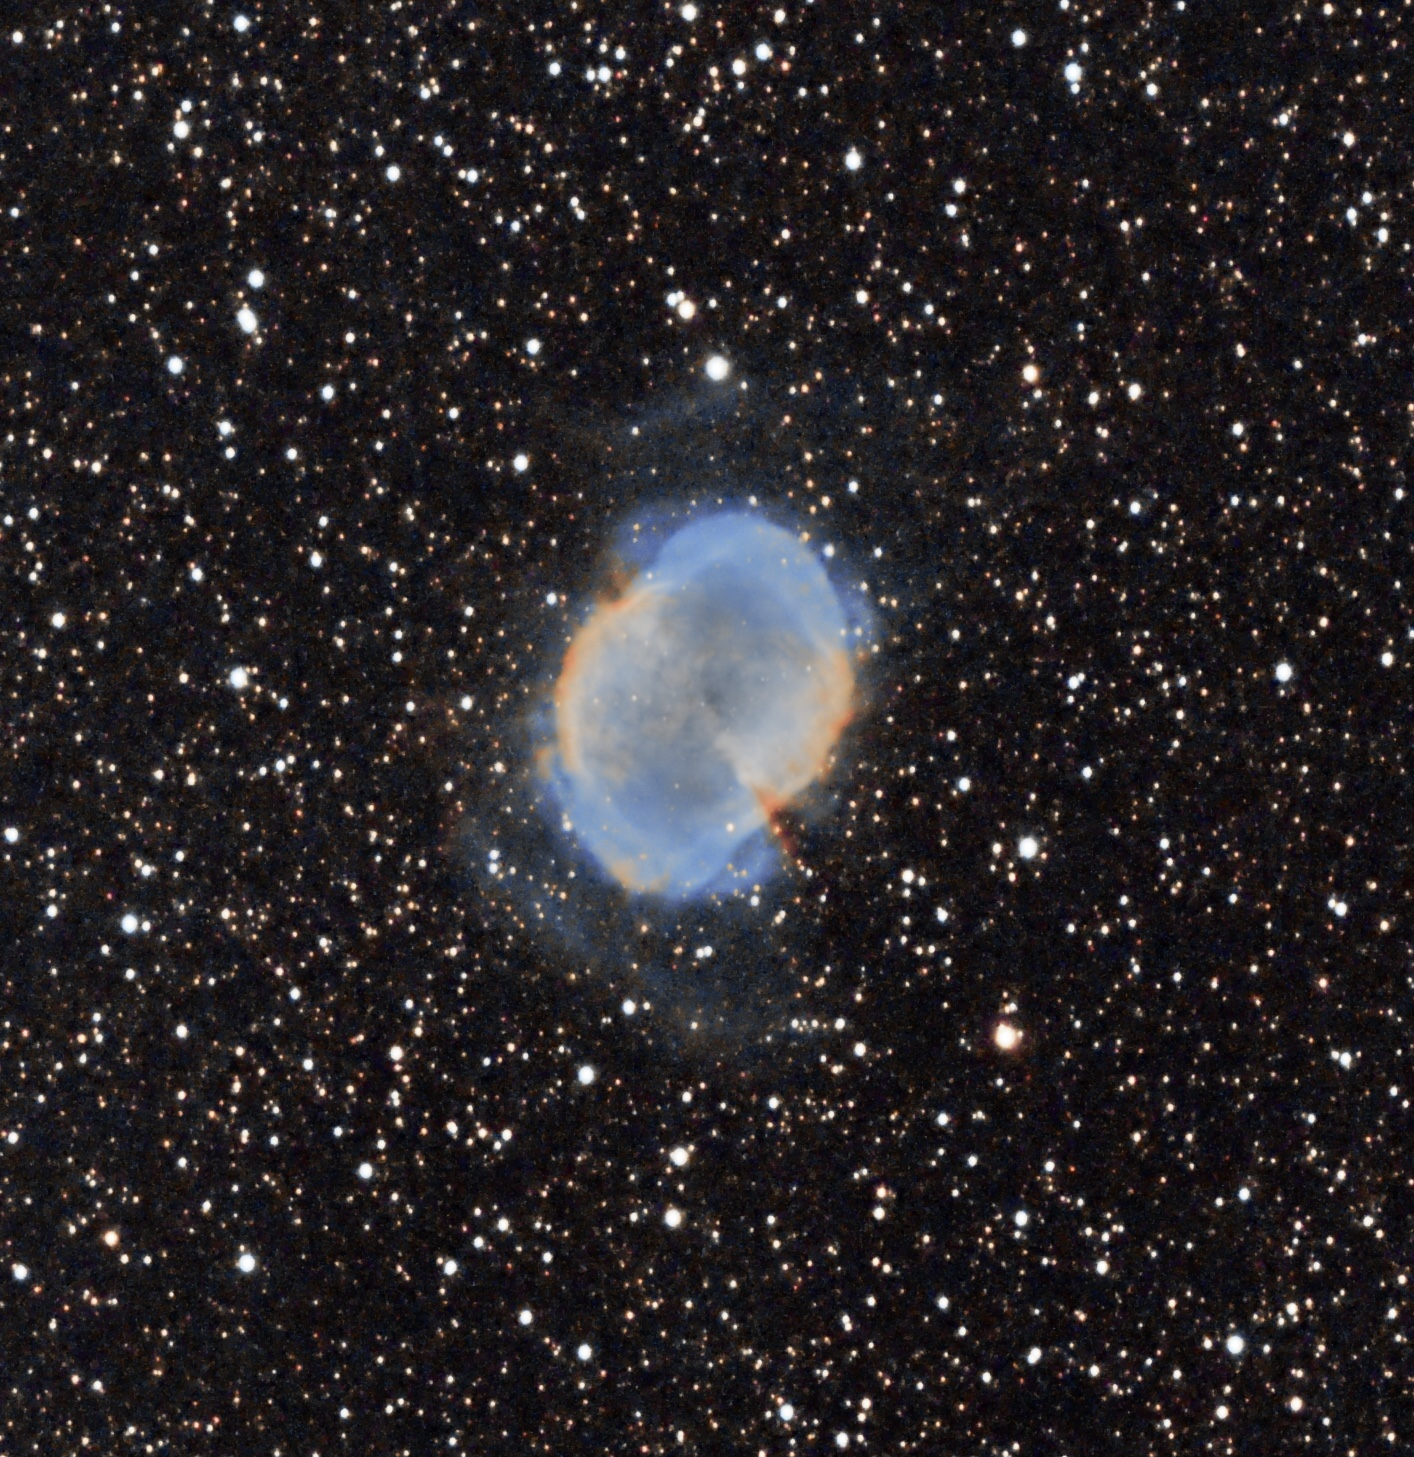 """M27 Dumbbell nebula (Pat Devine) July 18th 2021 Celestron RASA 8"""" ZWO 183mc pro IDAS NBZ filter ZWO air pro Sky-Watcher HEQ5 Pro 35 x 60s lights with darks, flats and bias frames., cropped. Gain 122 at -10C processed in APP and Pixinsight"""